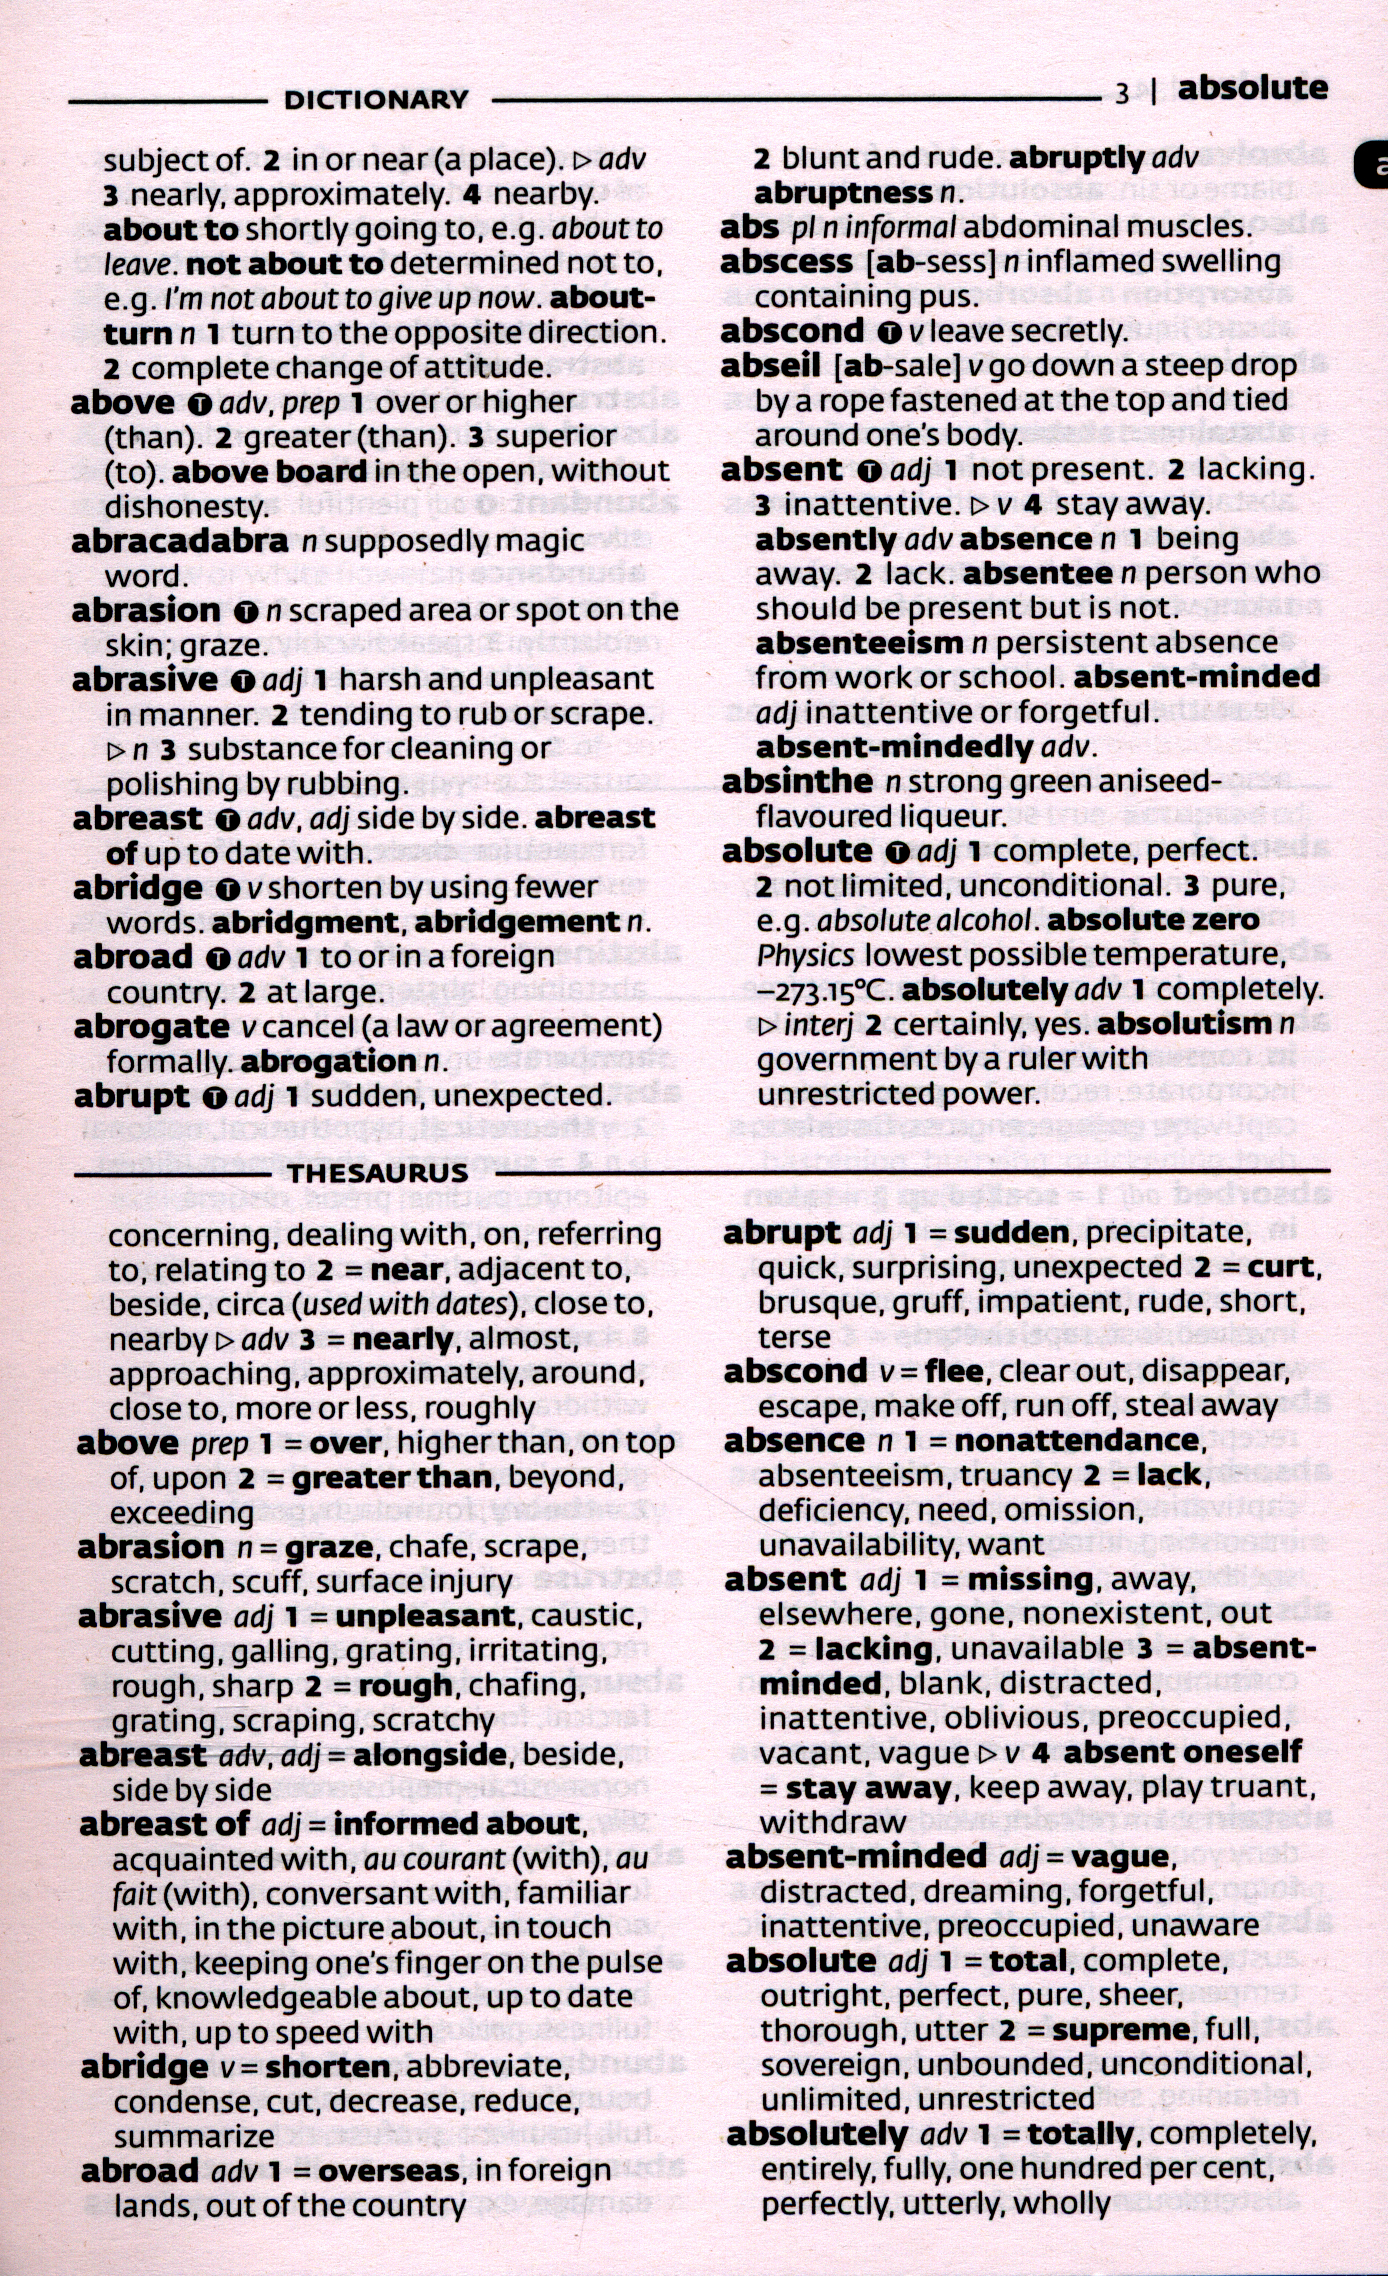 Collins English Dictionary Amp Thesaurus By Collins